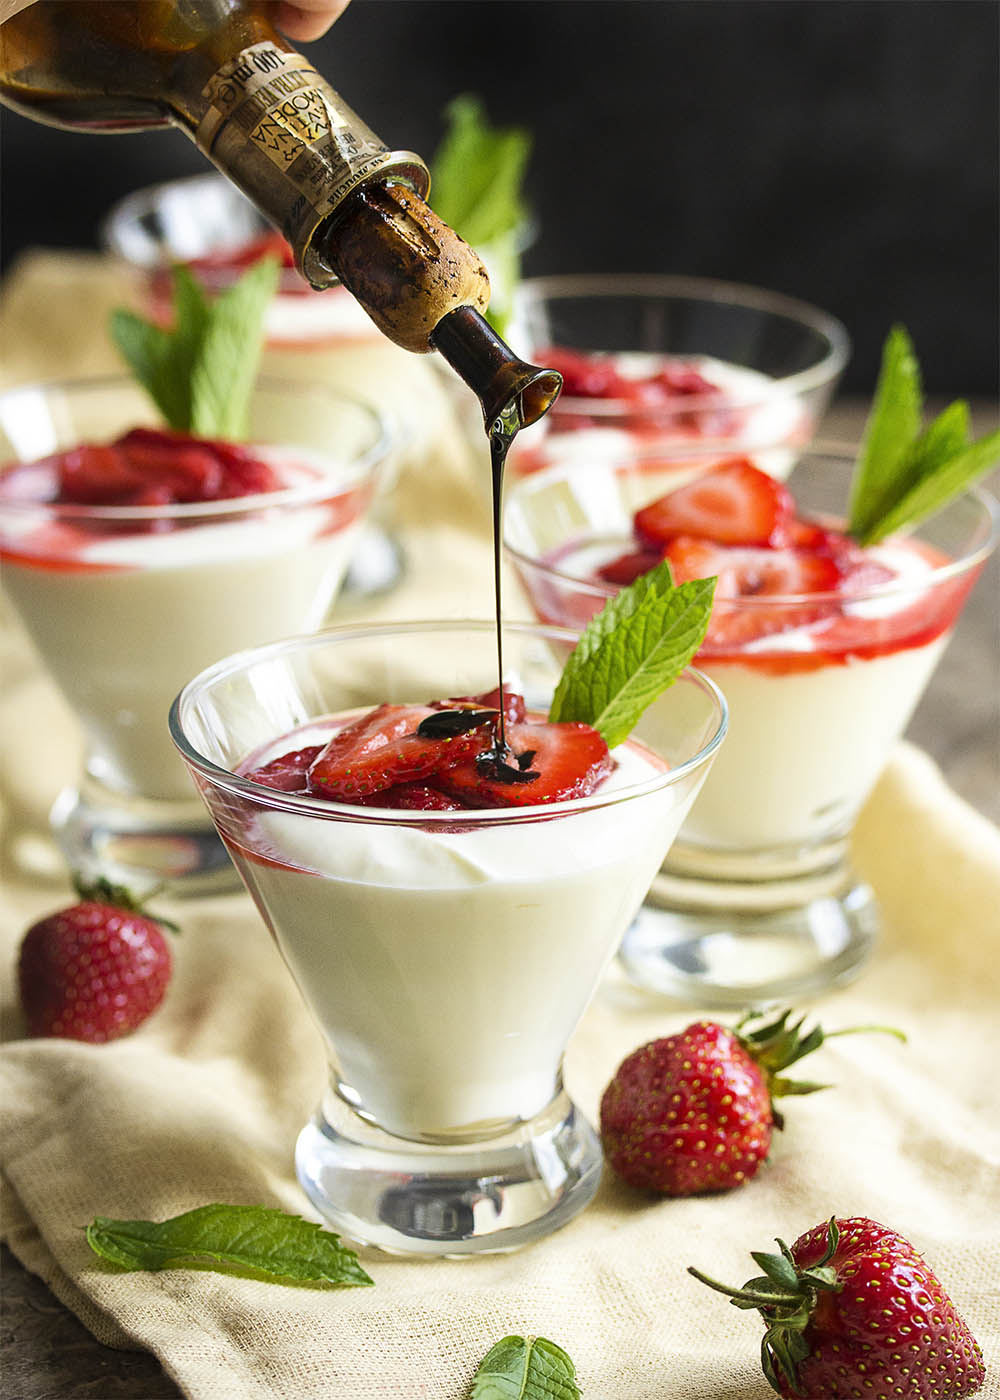 Martini glasses filled with mascarpone mousse and topped with fresh strawberry sauce and drizzled with balsamic vinegar.